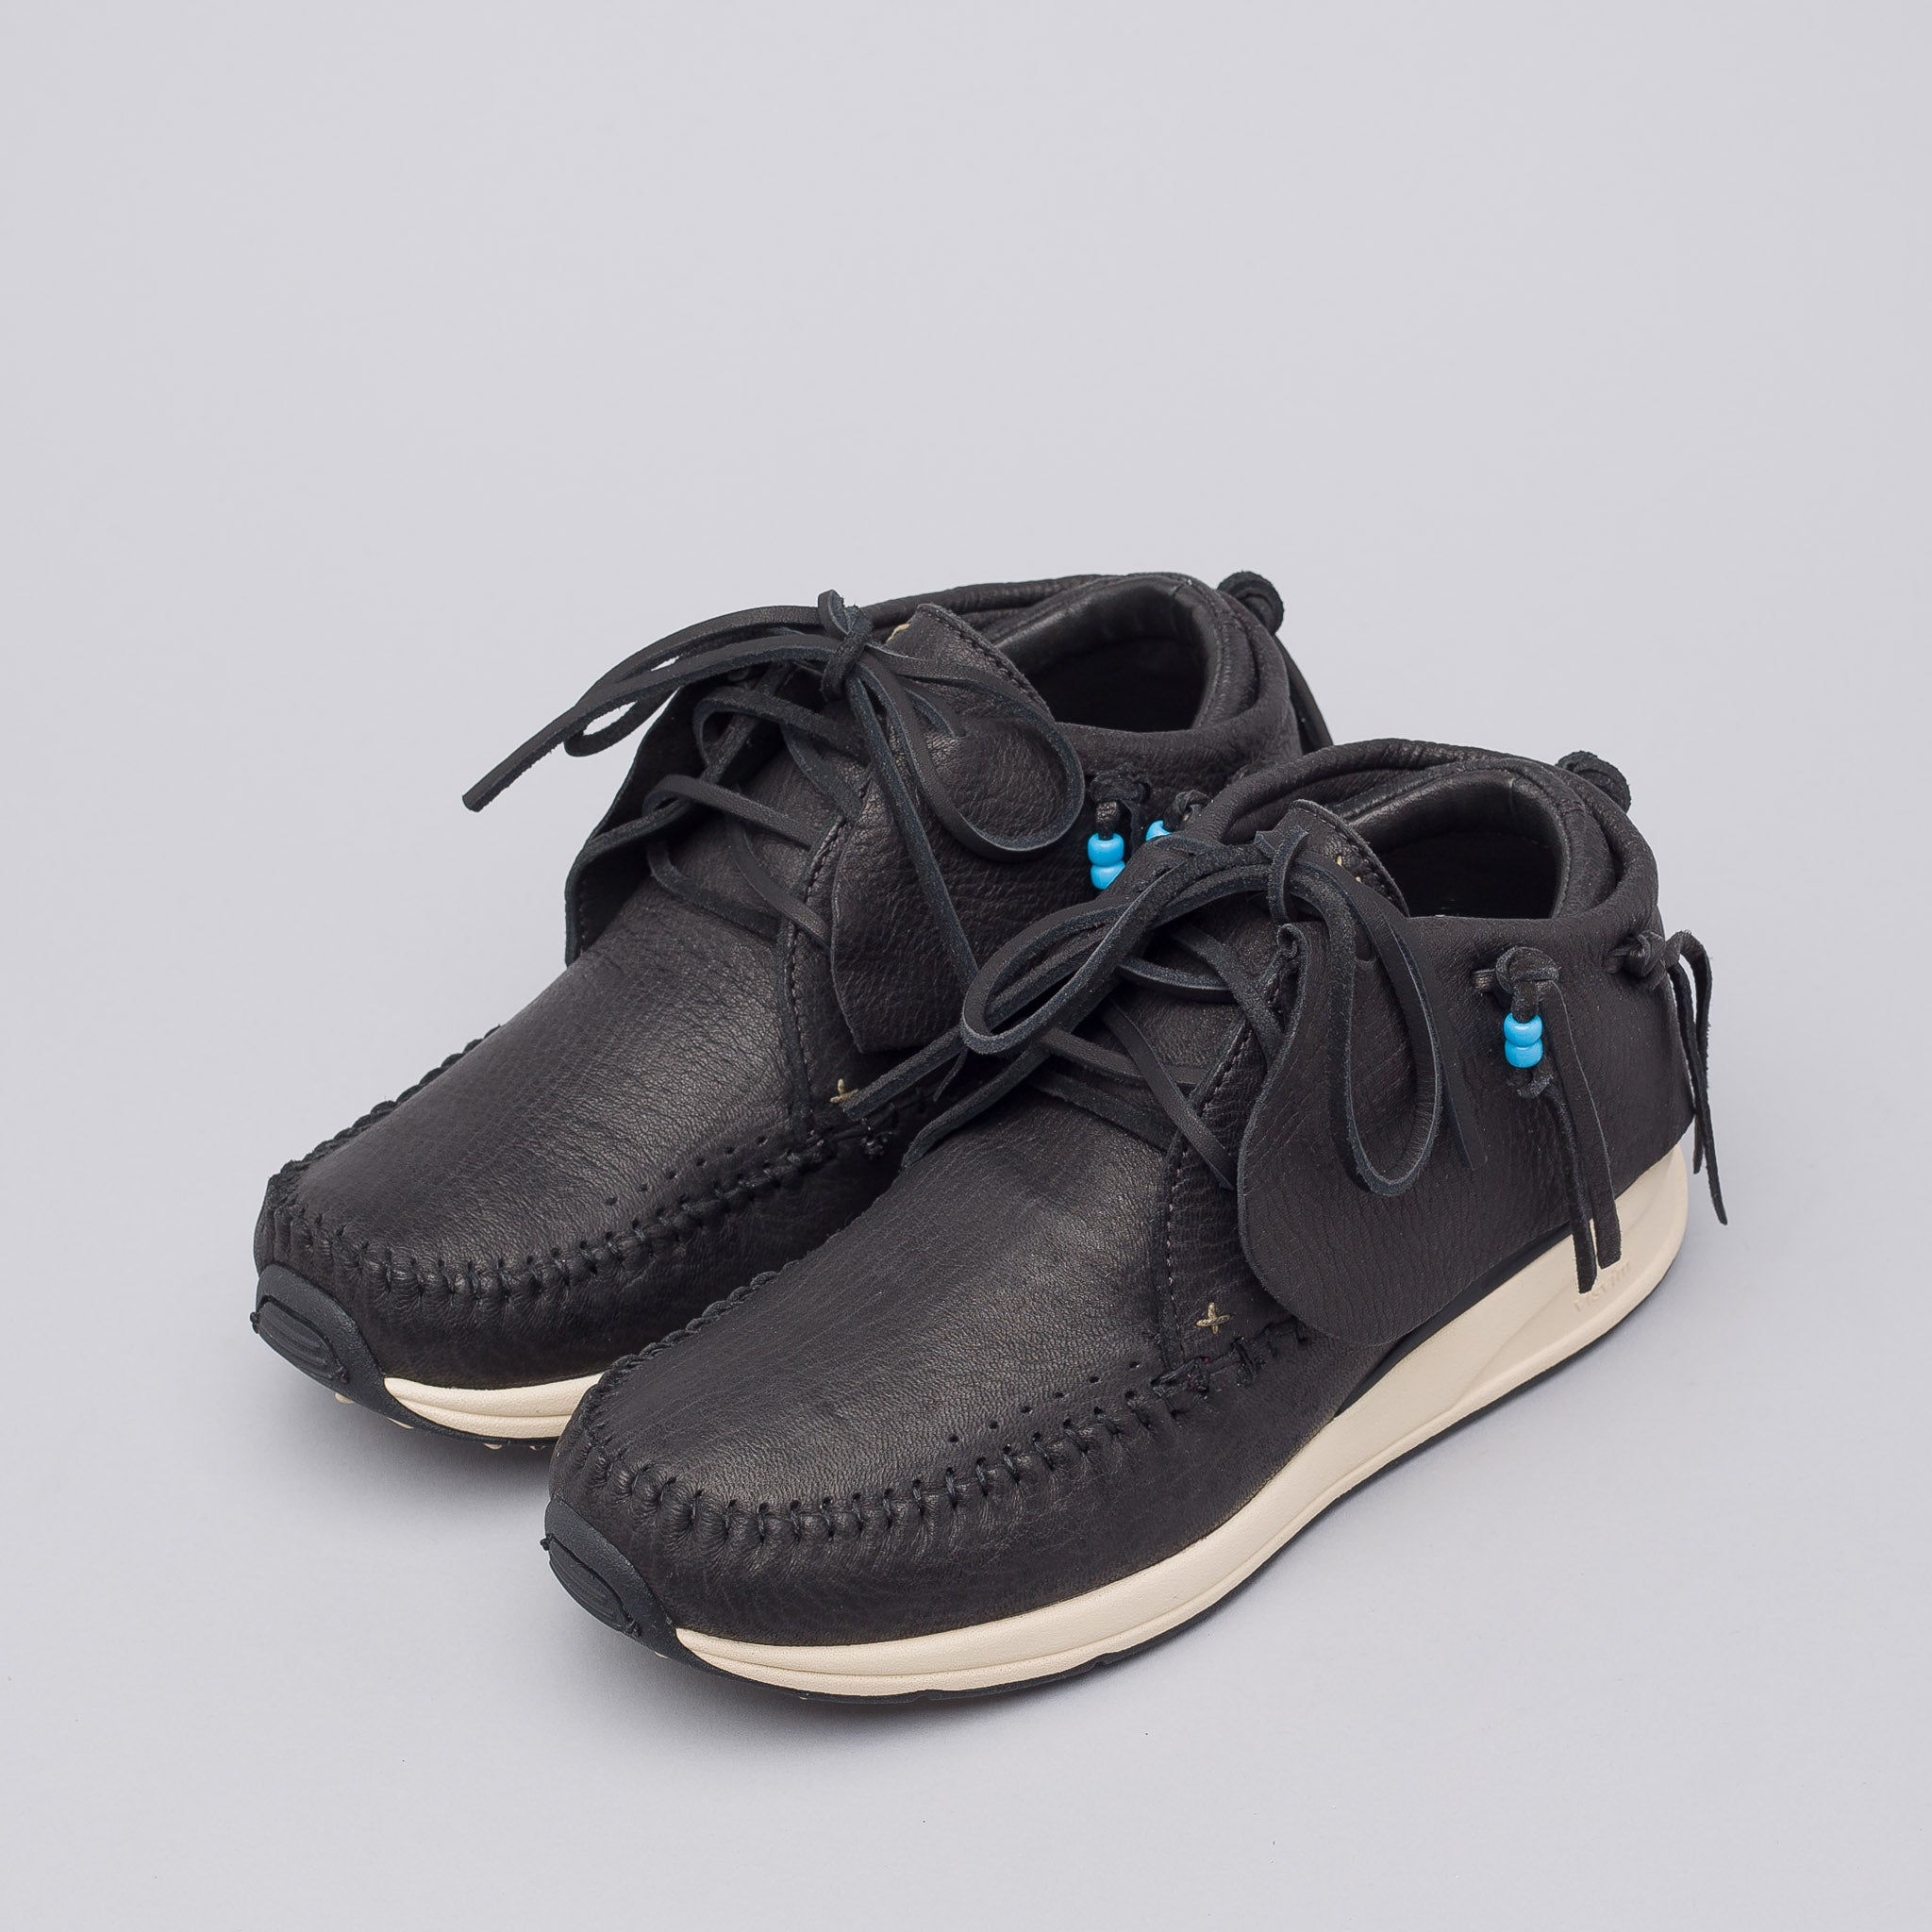 fast delivery cheap price Visvim Black FBT Red Deer sneakers footlocker for sale for sale the cheapest cheap price outlet 77WY5NZGcZ